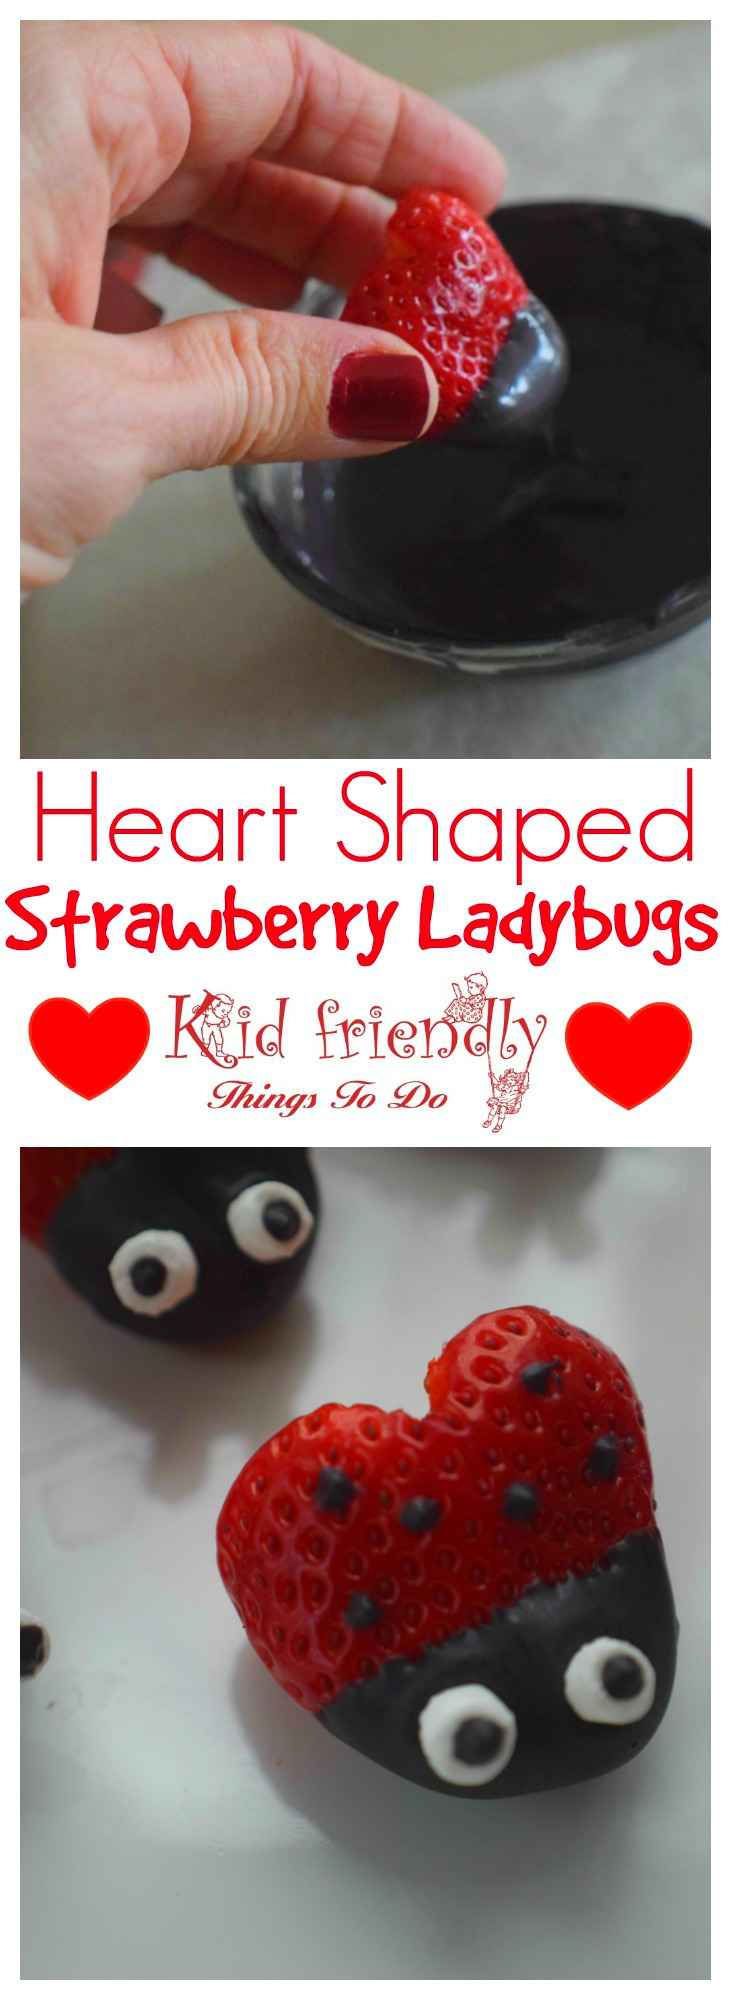 Heart Shaped Chocolate Covered Strawberry Ladybugs